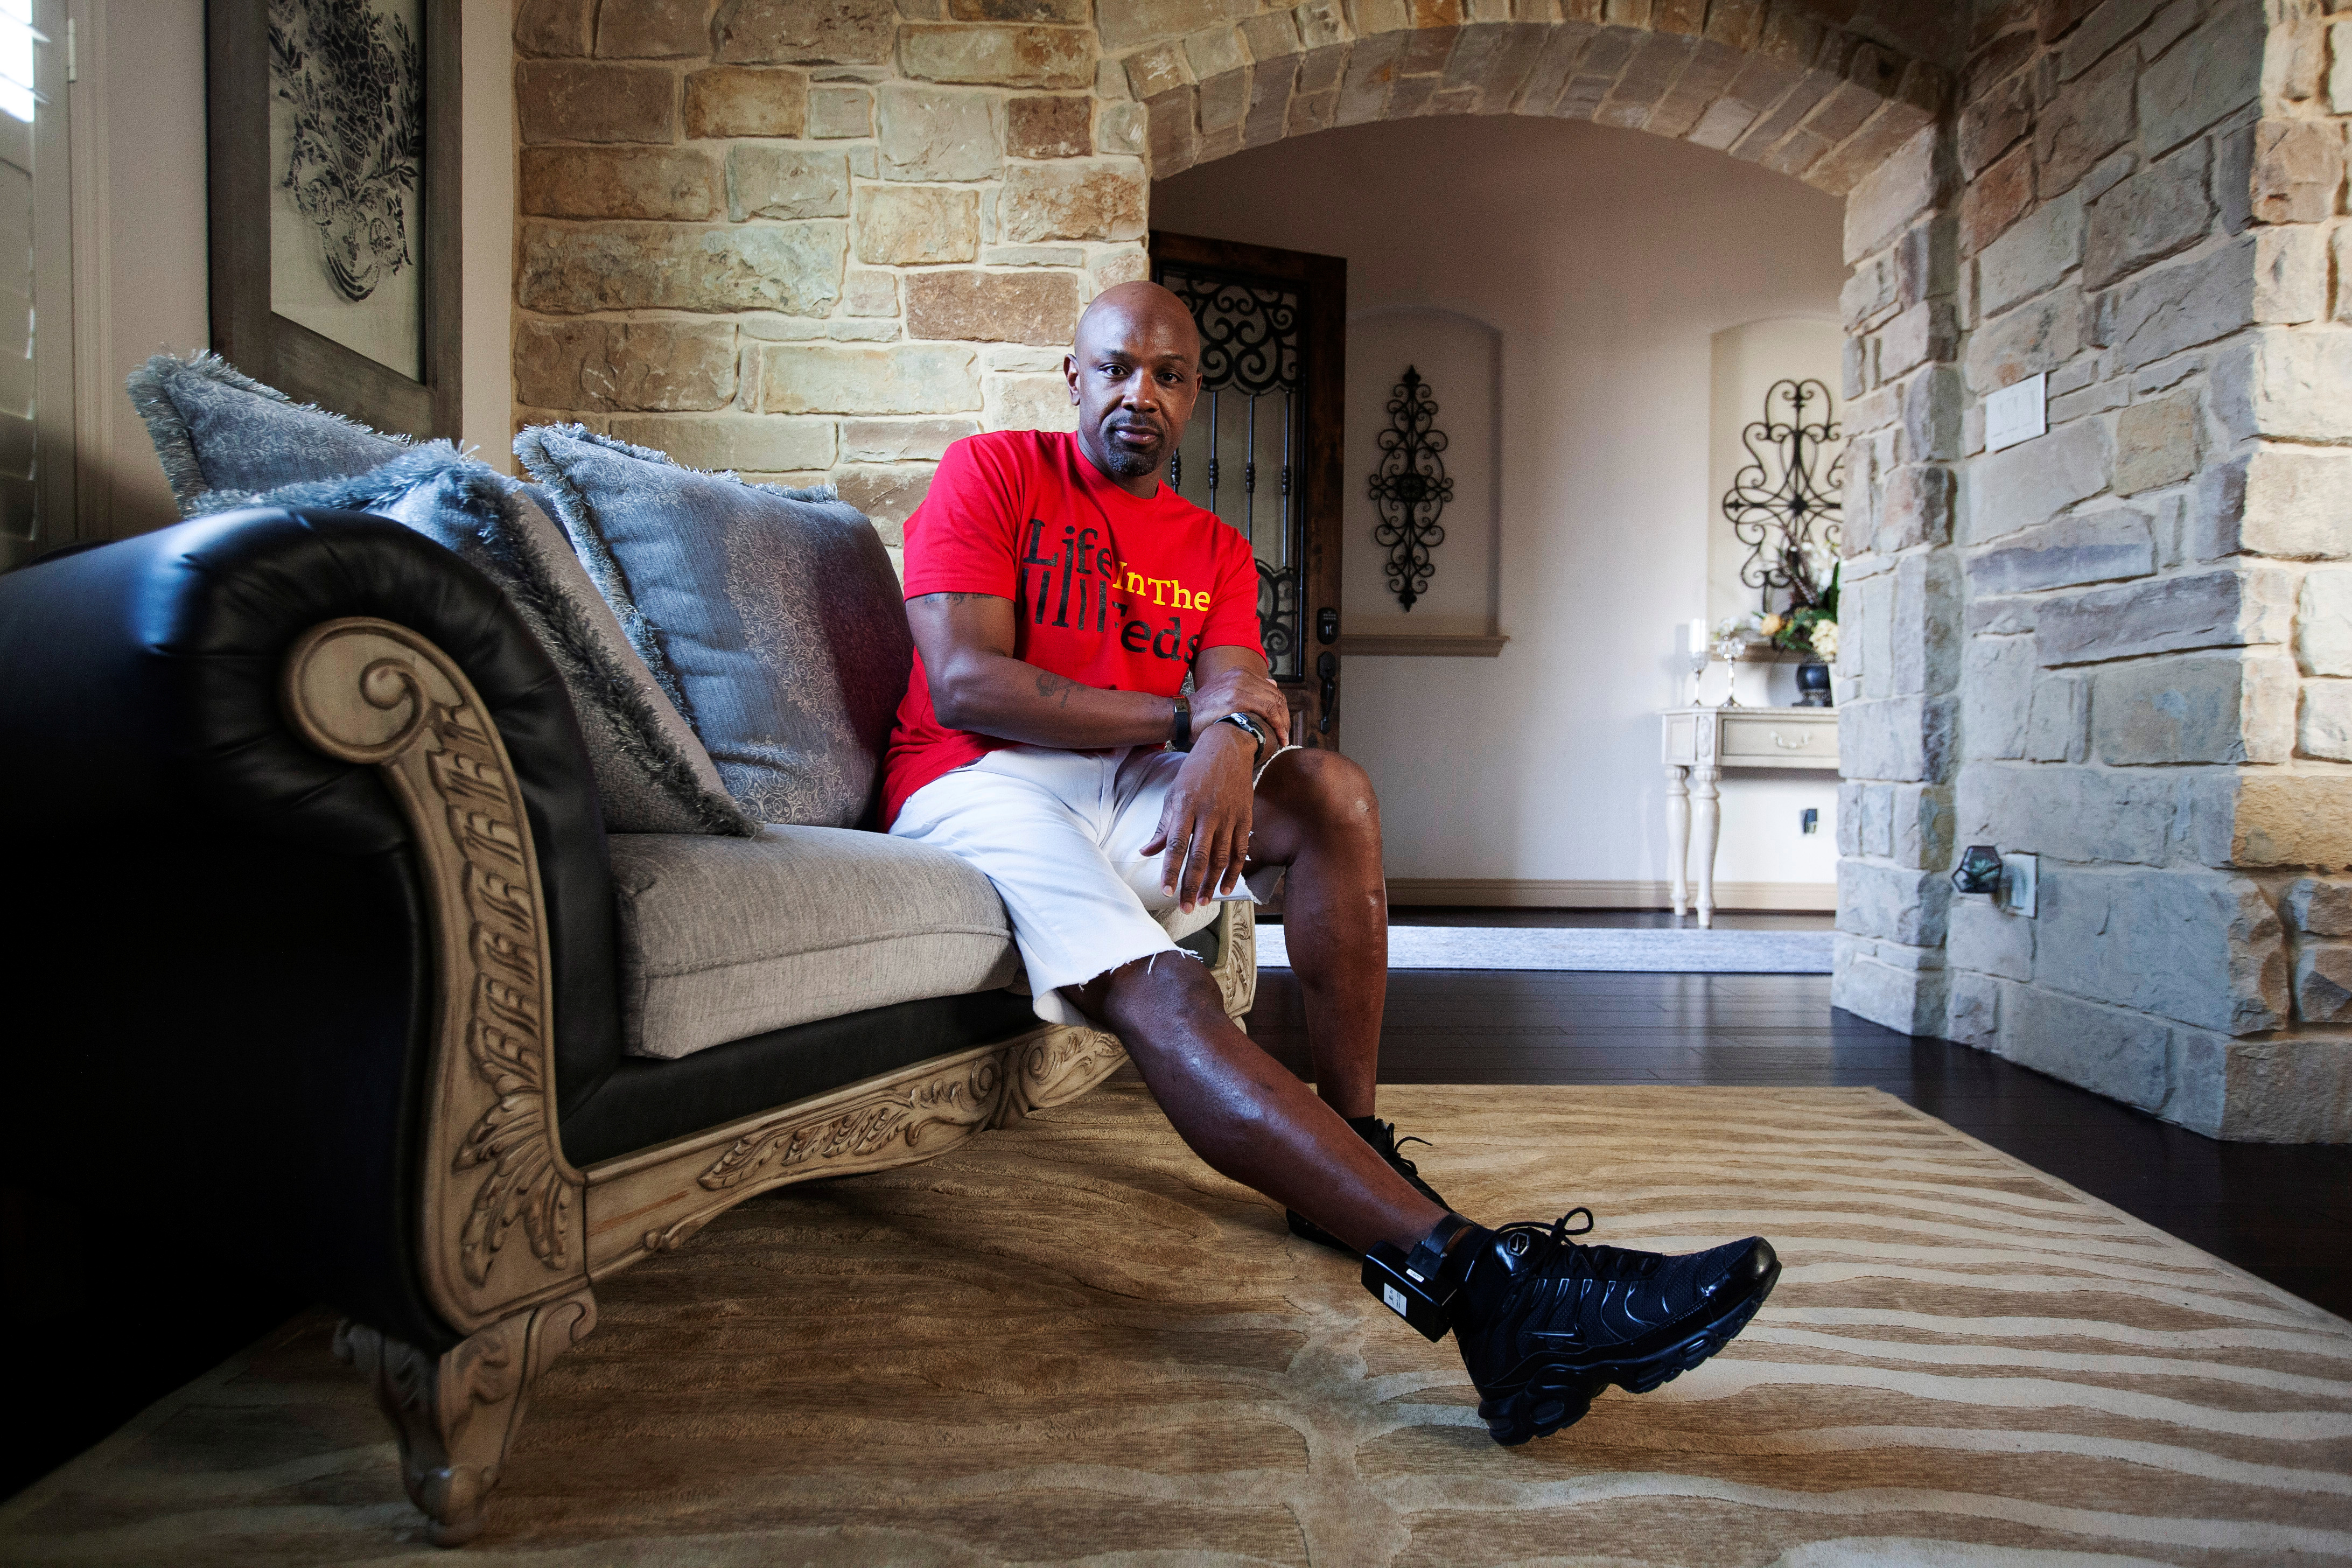 Kendrick Fulton, who was released to home confinement due to the coronavirus disease (COVID-19) pandemic, poses for a photo at his sister's house in Round Rock, Texas, U.S., April 8, 2021. He is wearing an ankle monitor that he must charge nightly in order to comply with the terms of his release. REUTERS/Nuri Vallbona